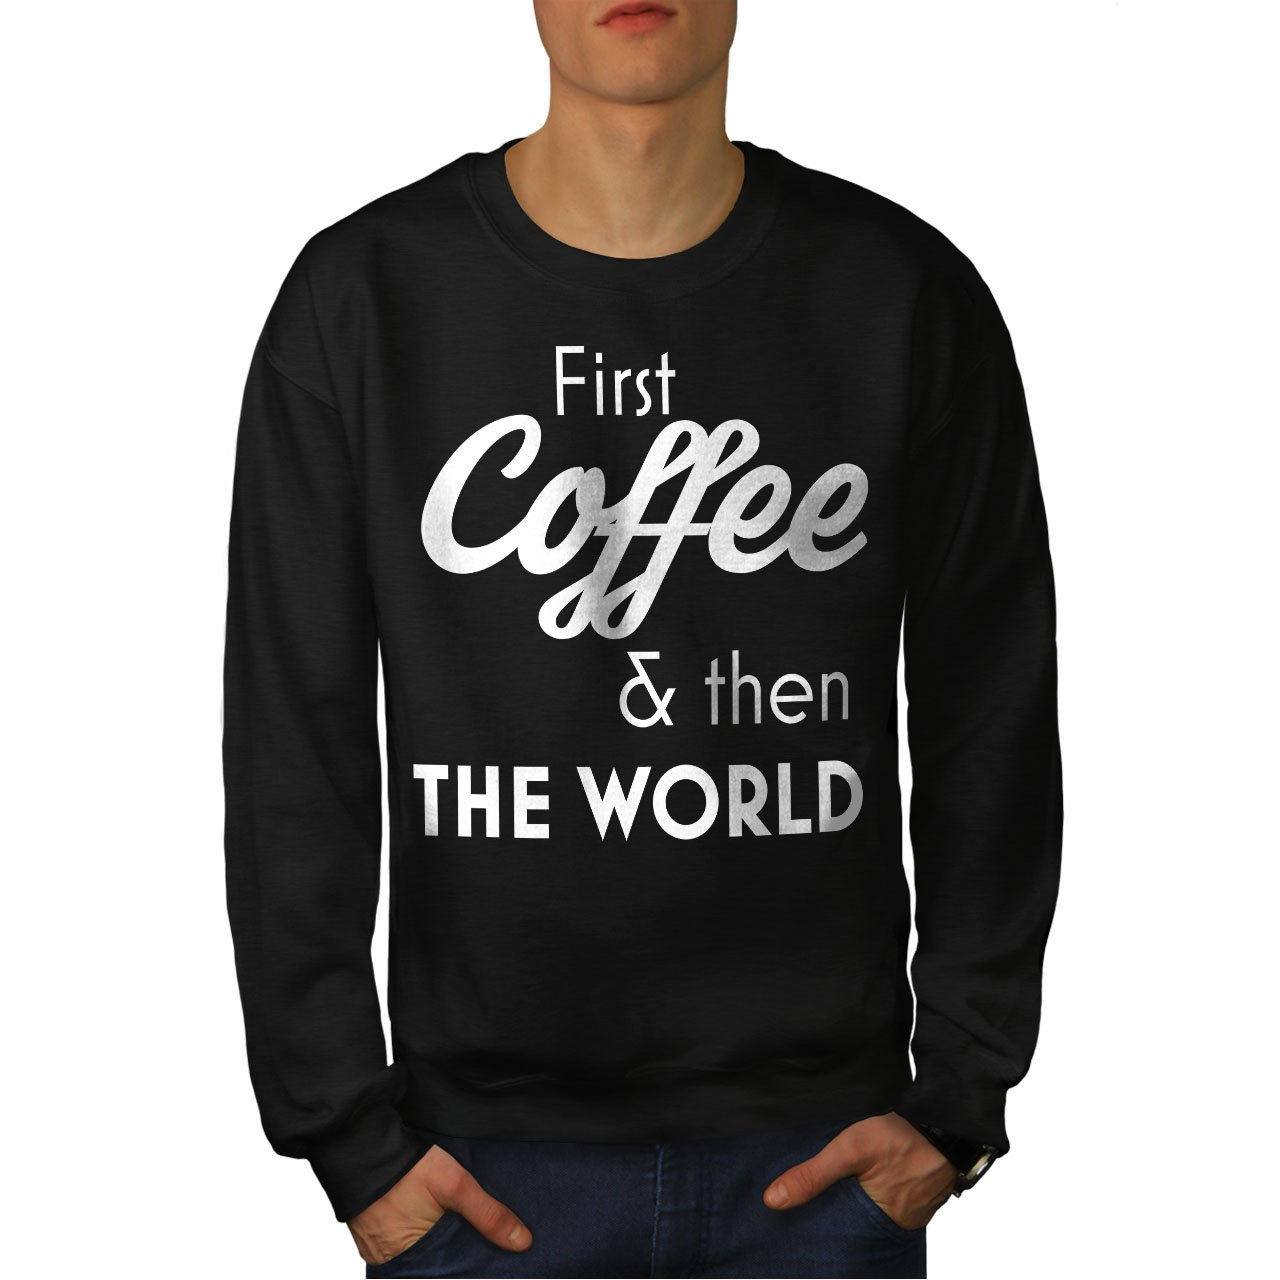 World Second Casual Jumper wellcoda Coffee First Mens Sweatshirt